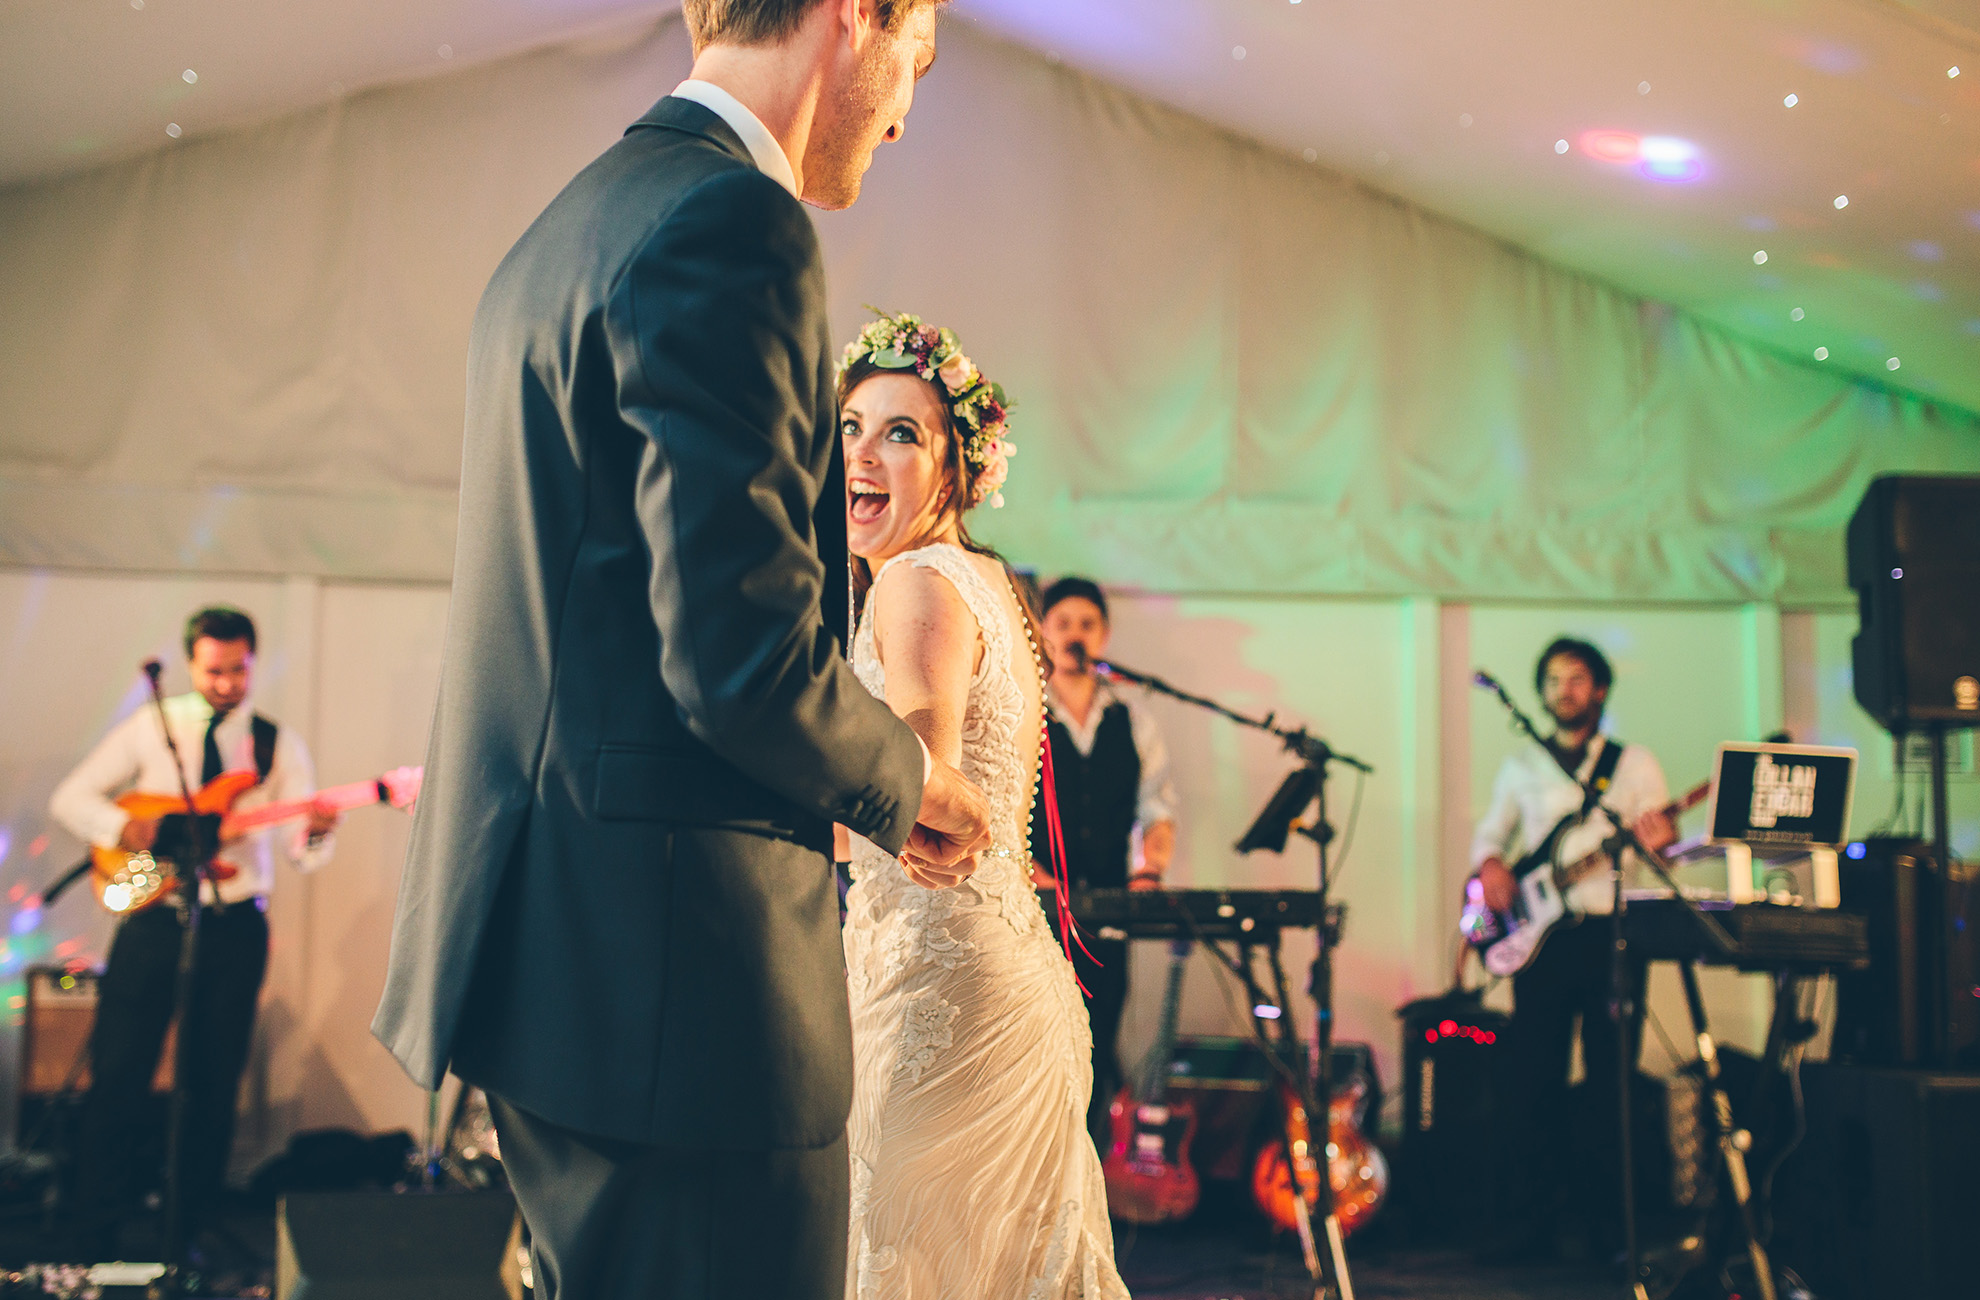 A bride and groom enjoy their first dance in front of guests at Combermere Abbey wedding venue in Cheshire